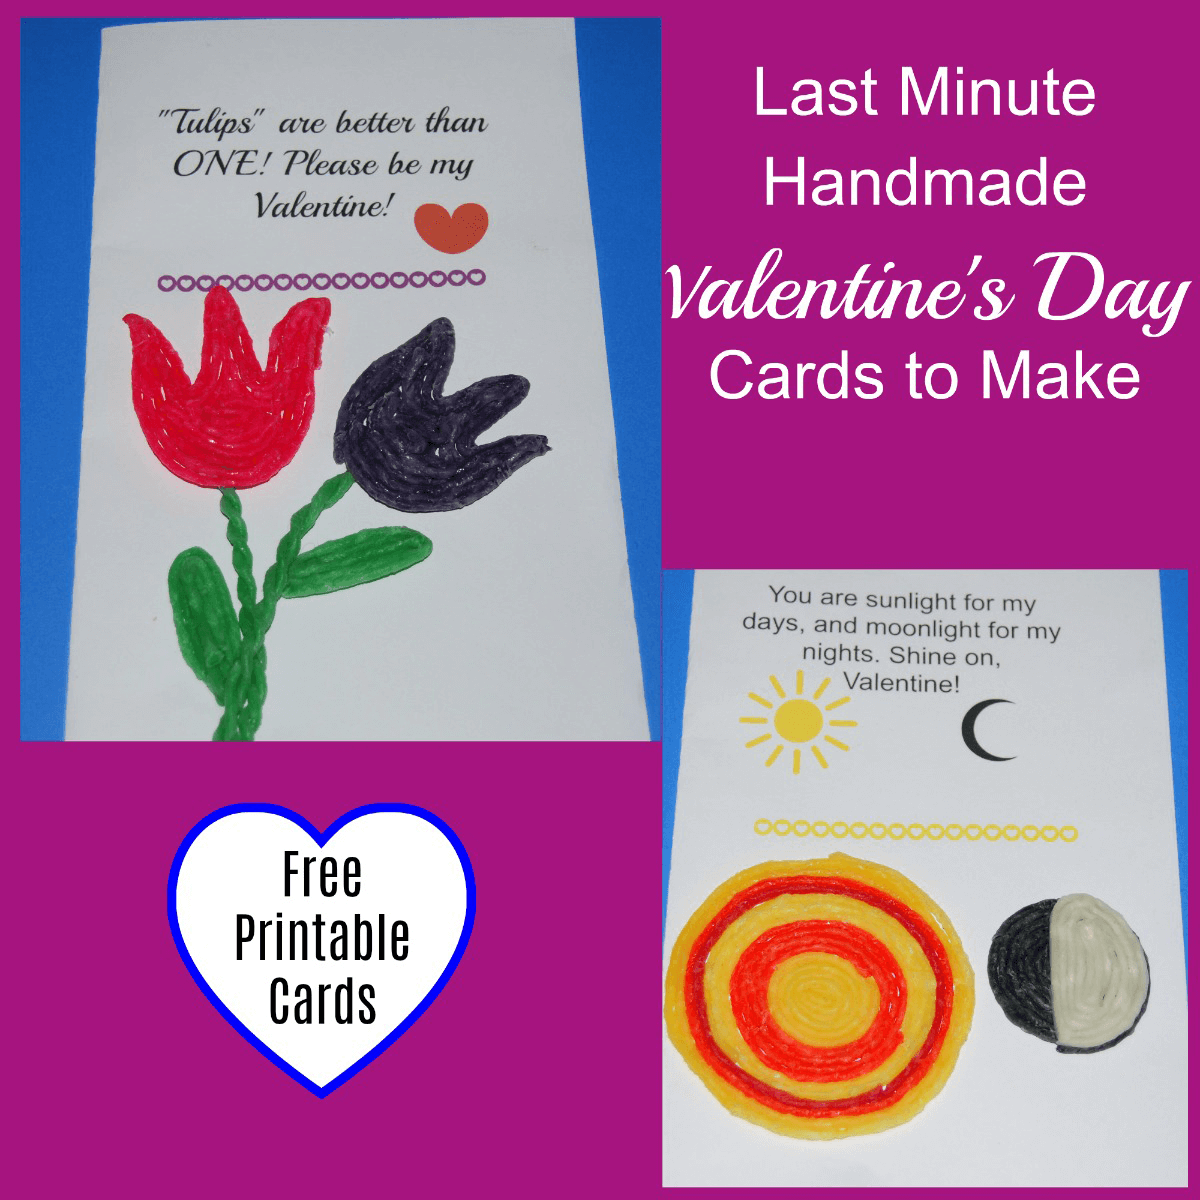 Last Minute Valentine's Day Cards to Make